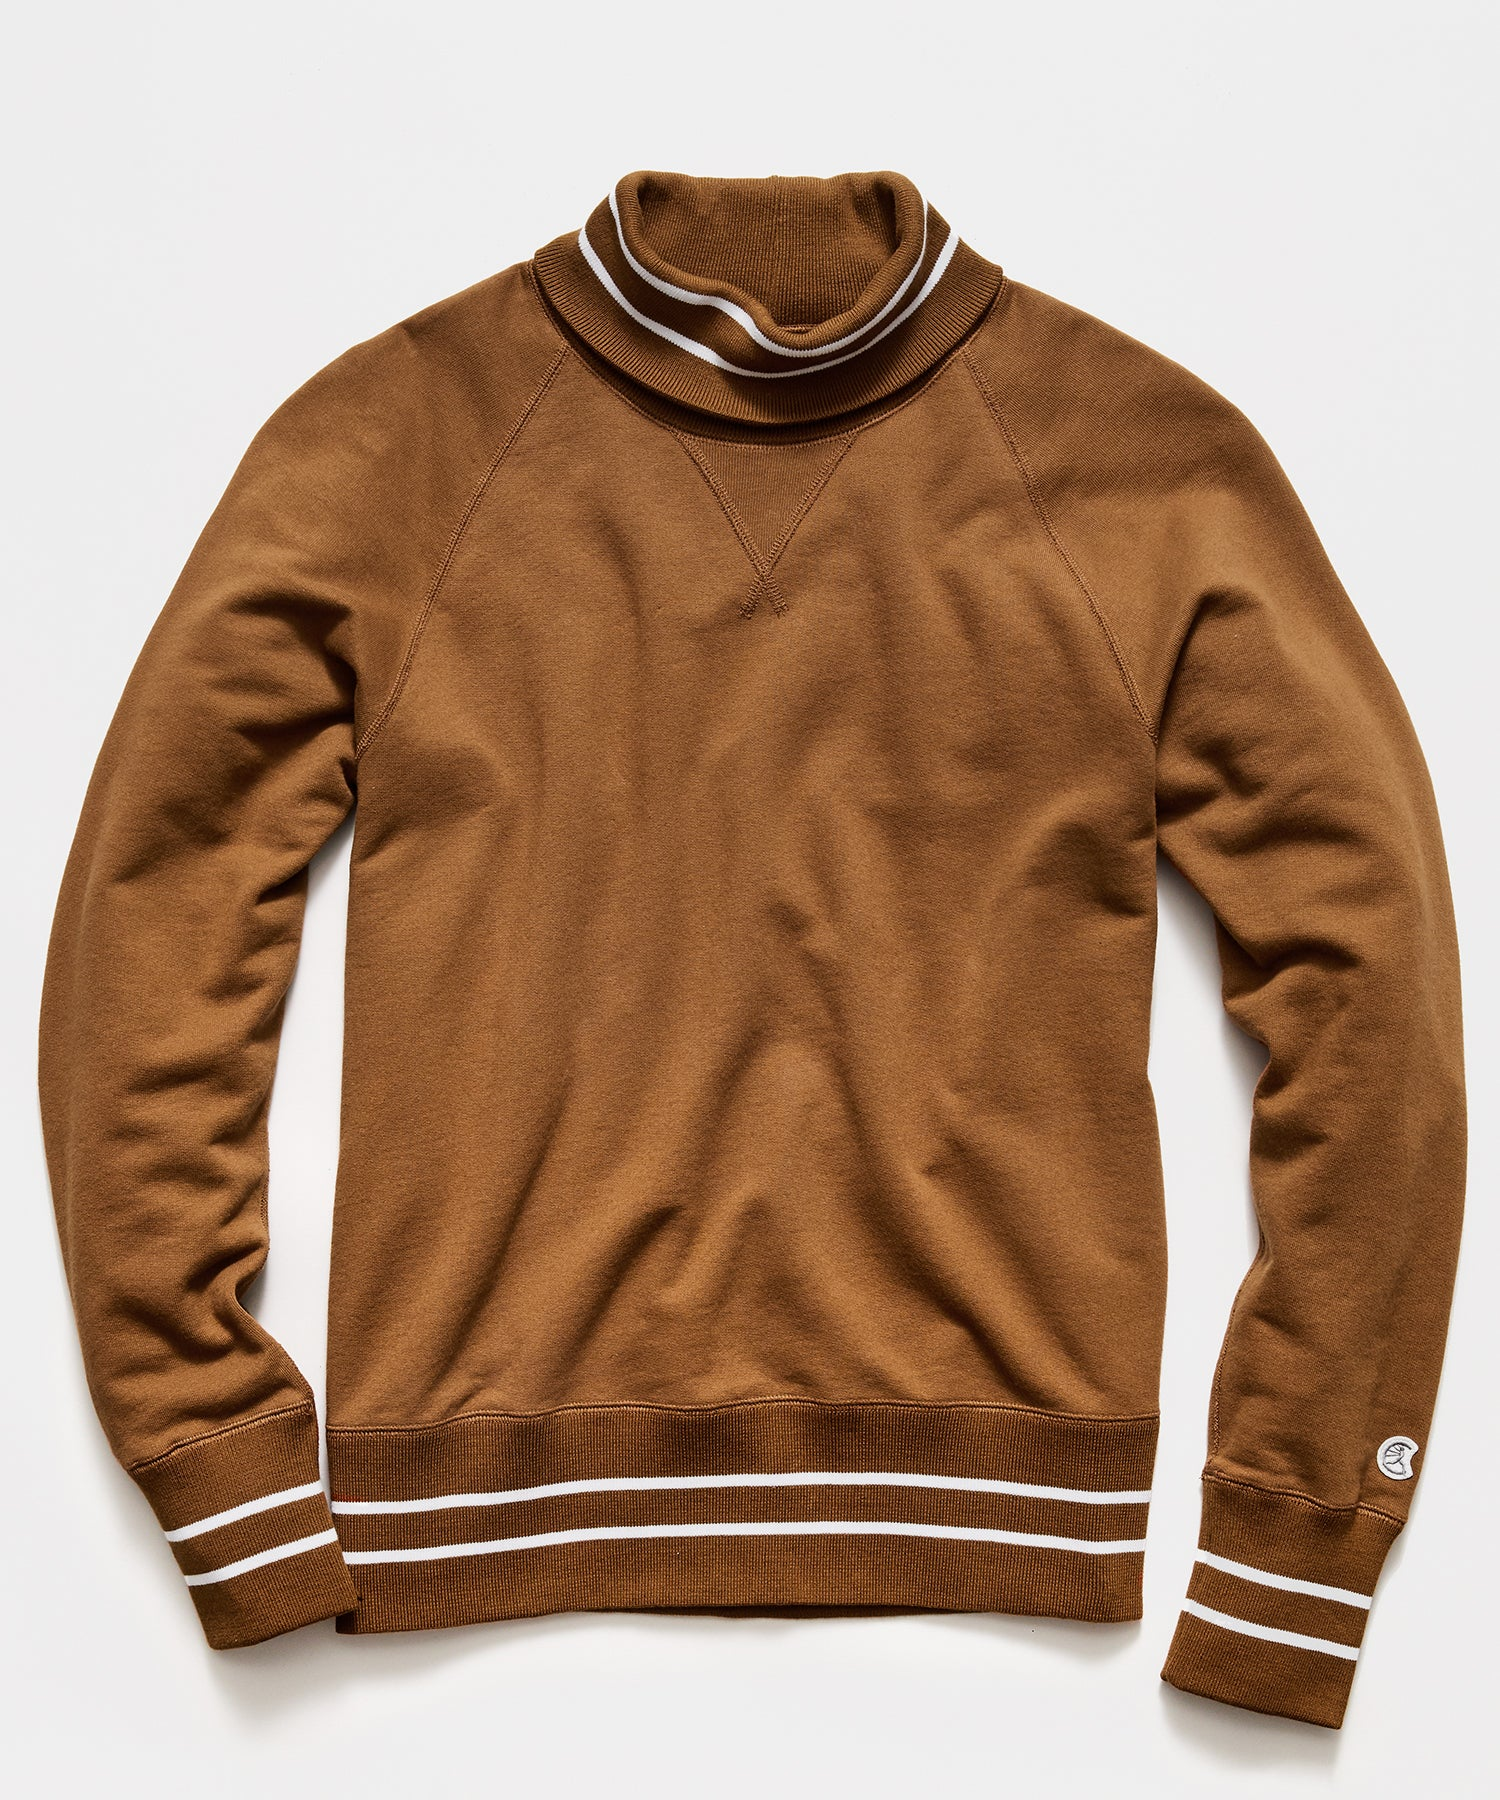 Tipped Turtleneck Sweatshirt in Pecan